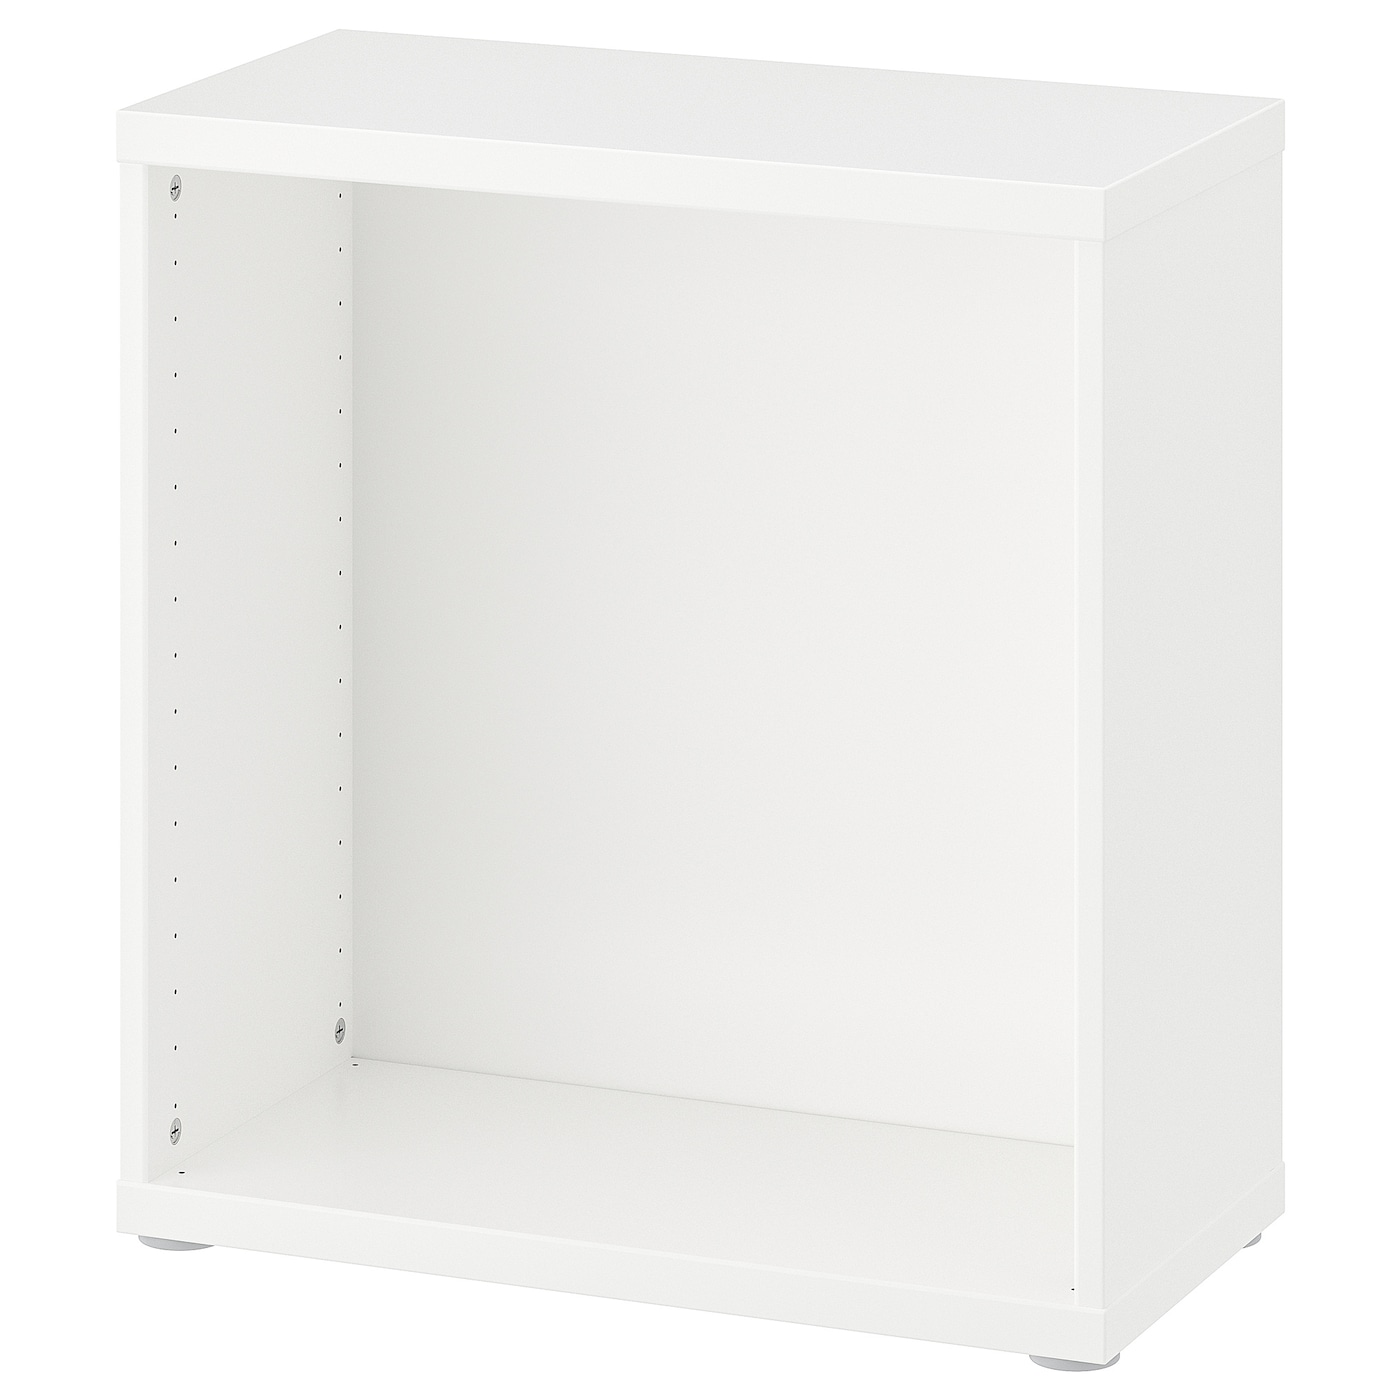 IKEA STUVA frame Can stand on the floor or be hung on the wall.